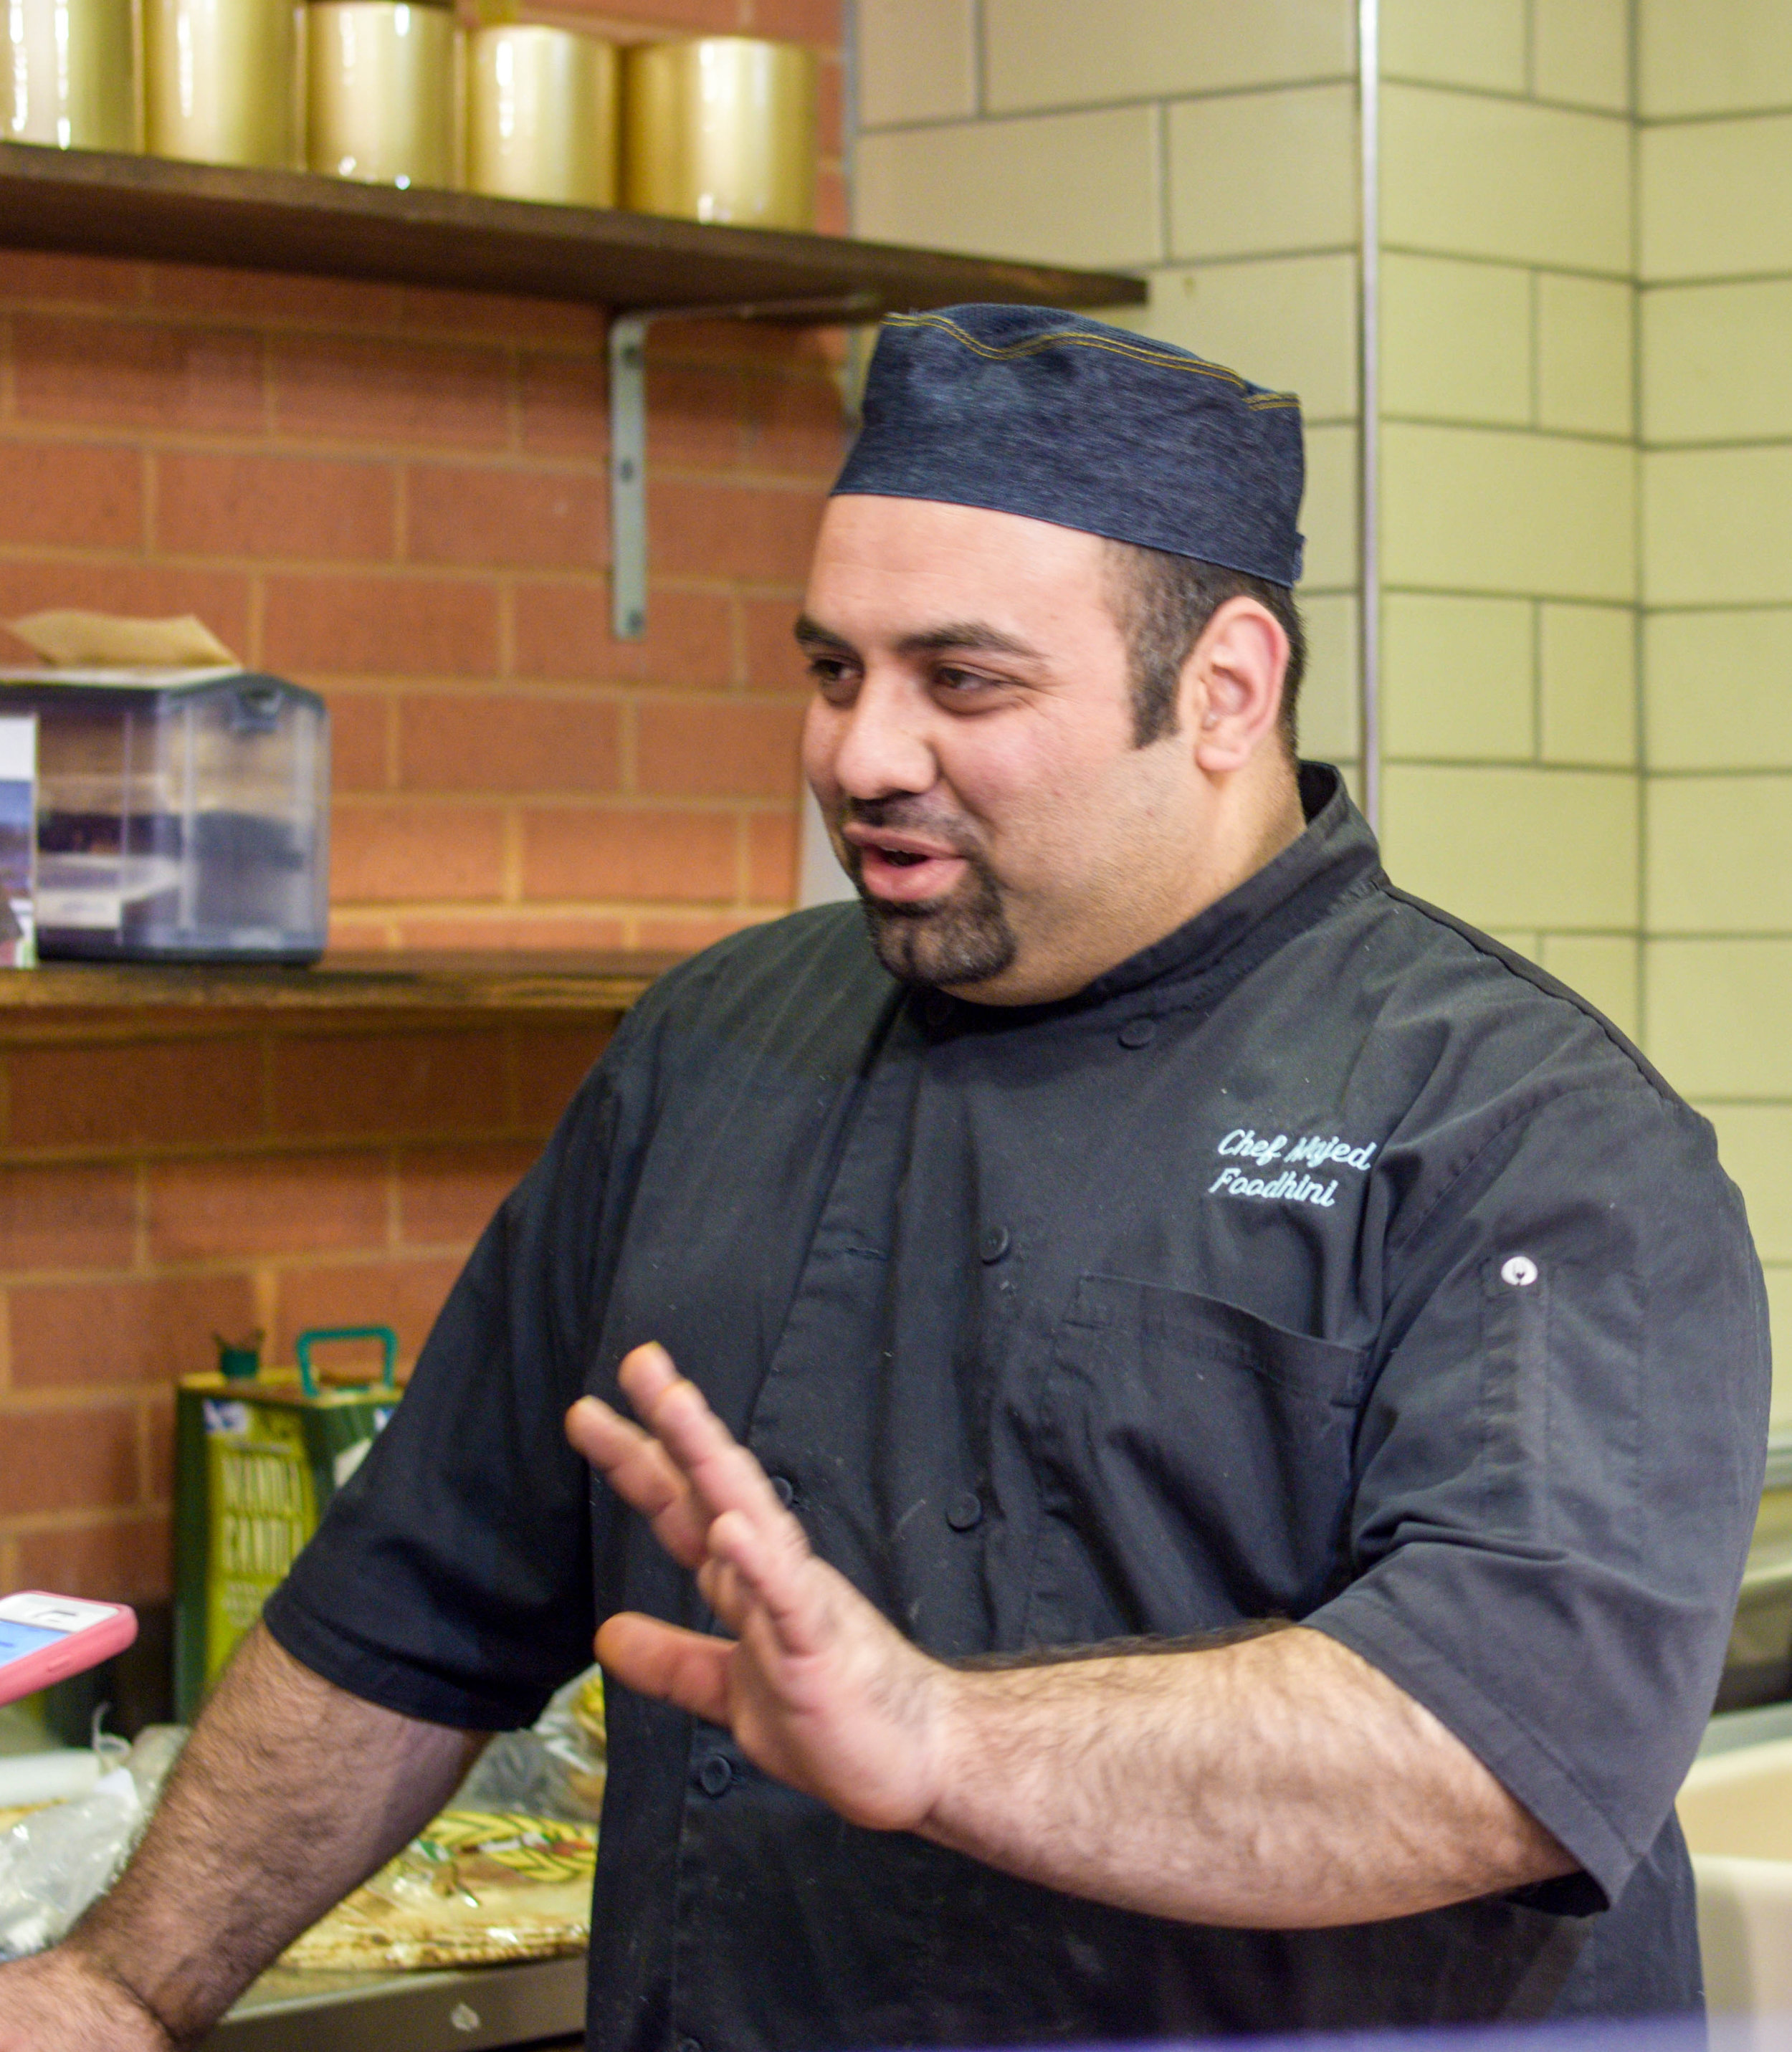 Syrian Chef Majed Abdulraheem will be in charge of the Foodhini operations at Foggy Bottom.